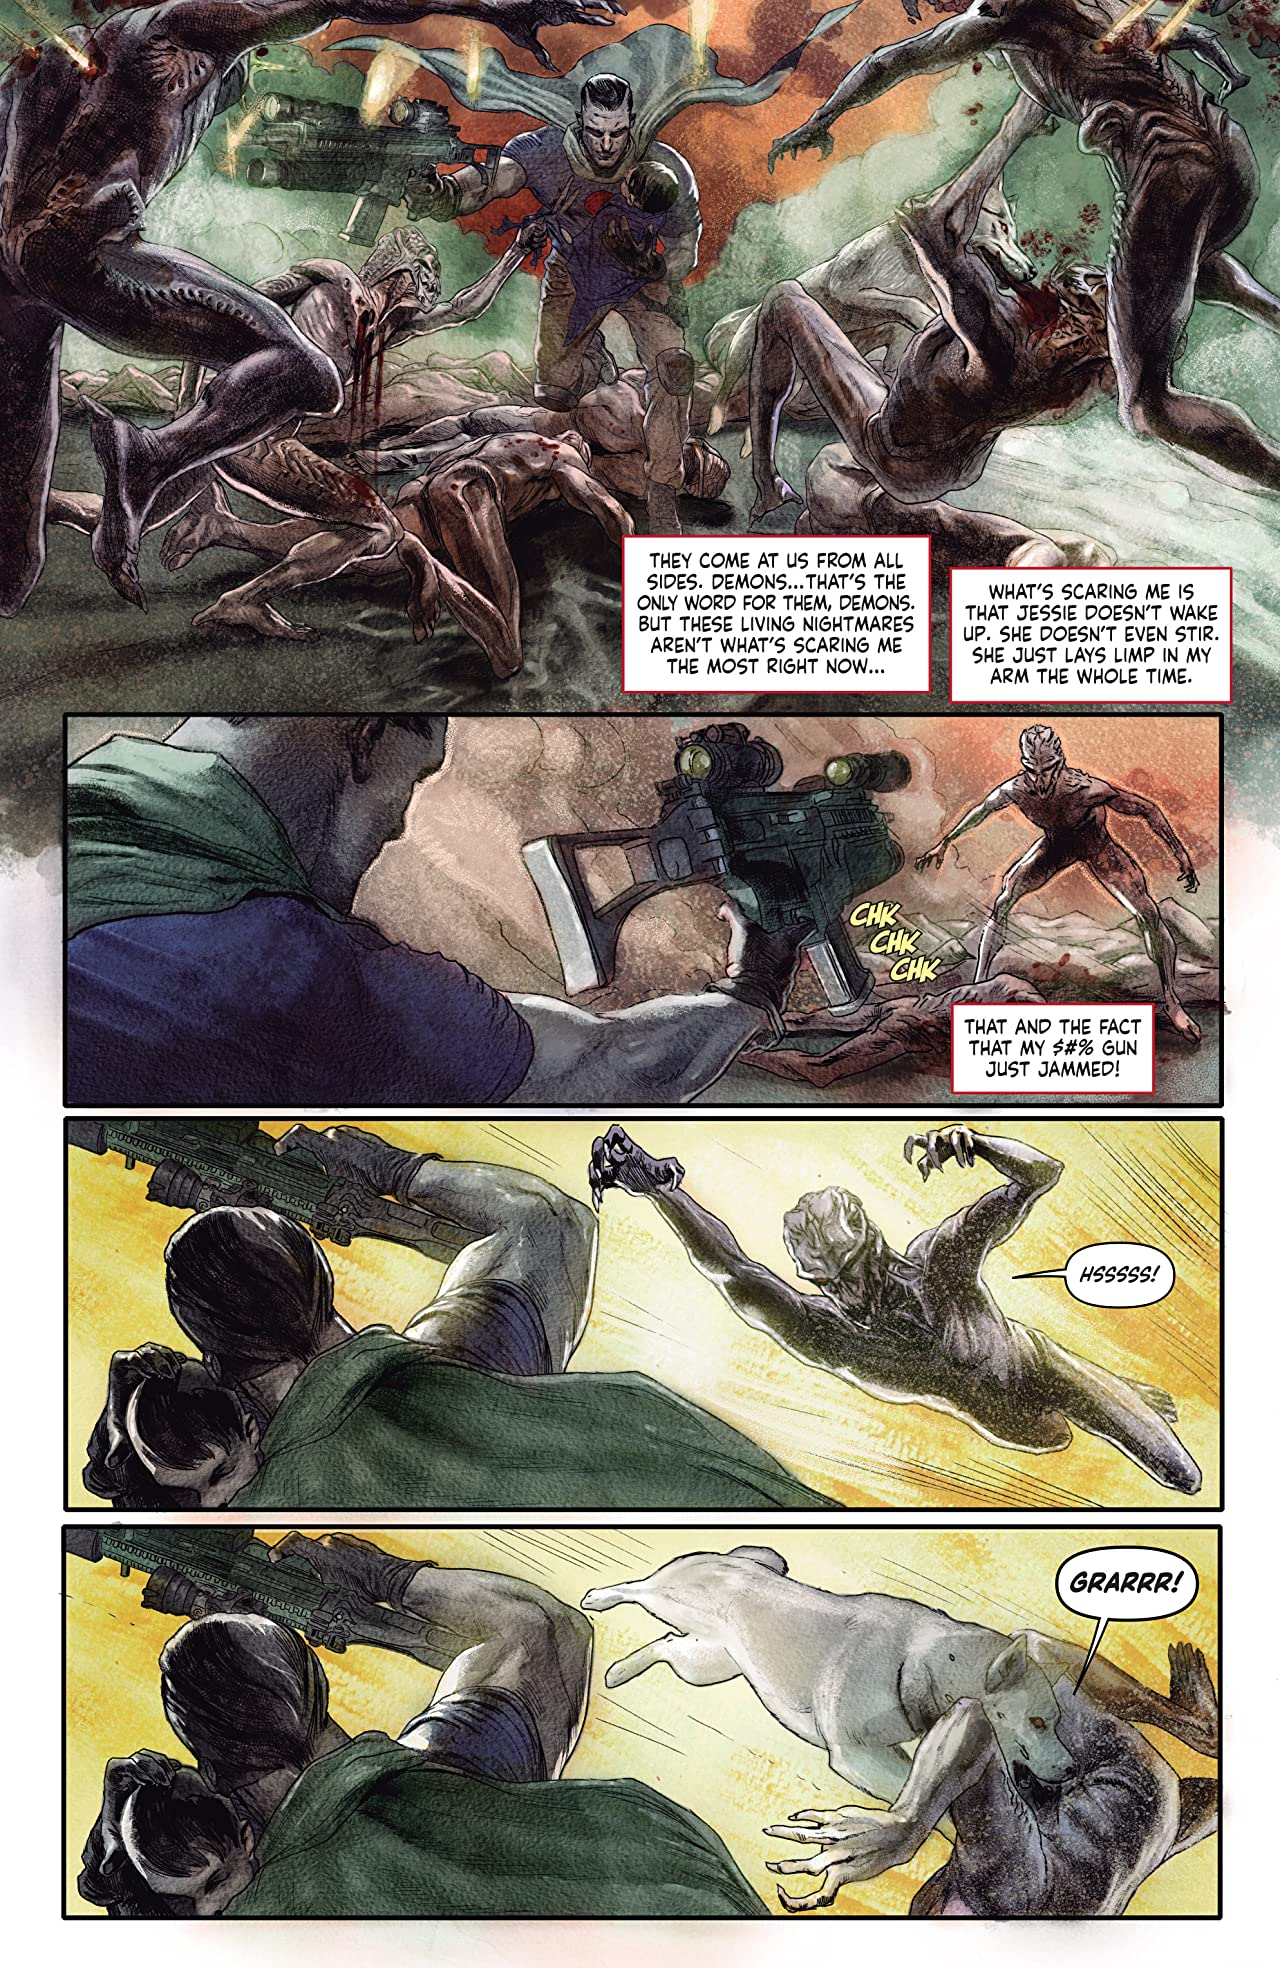 Bloodshot Salvation #8